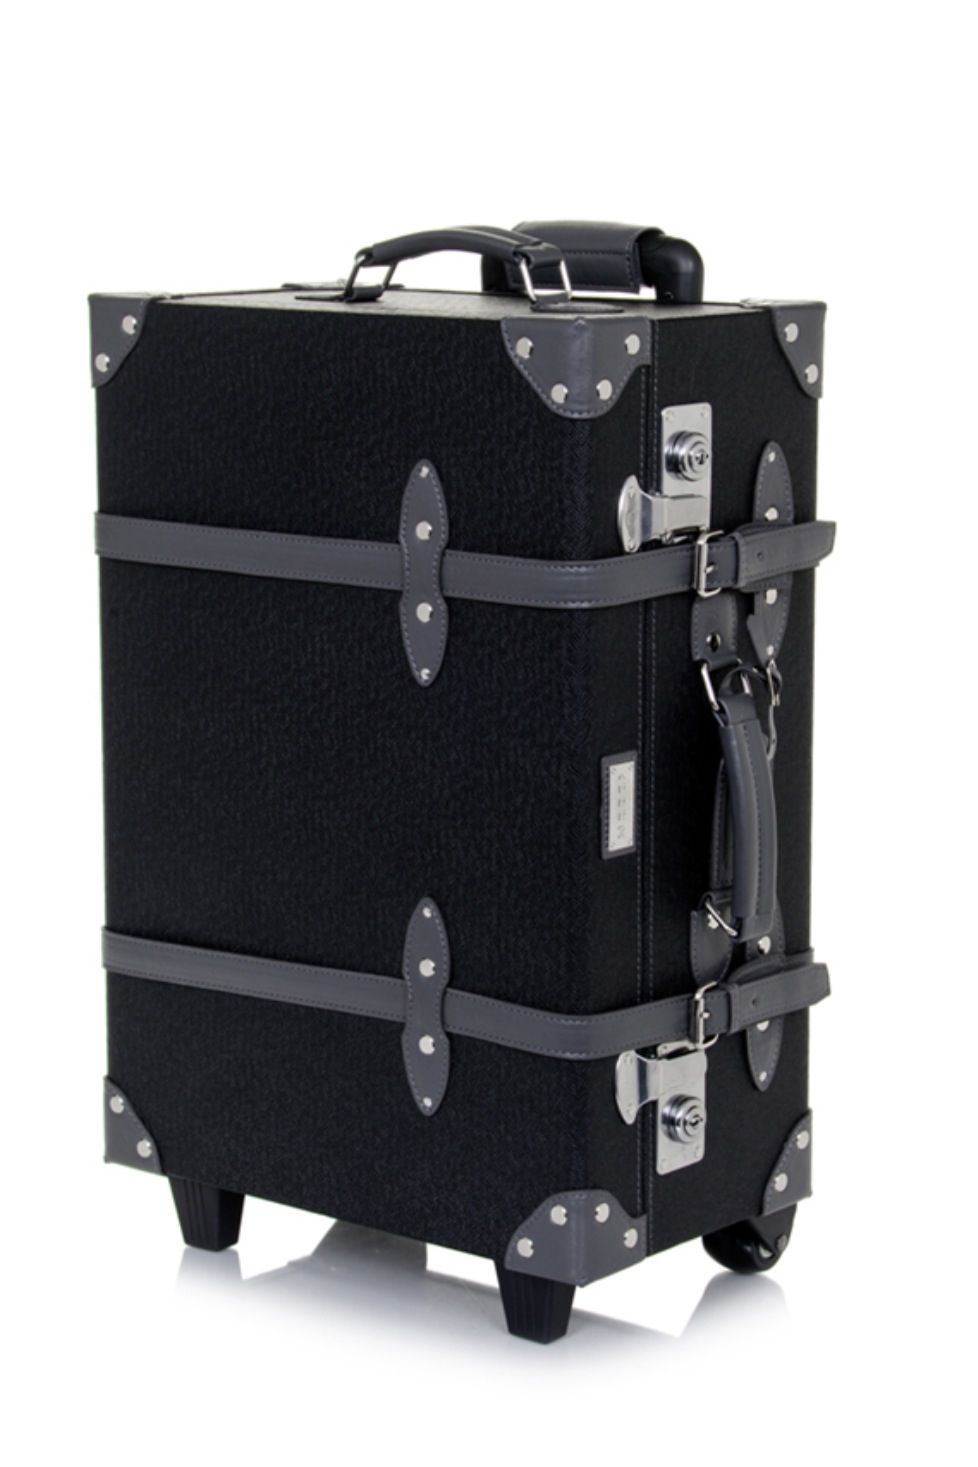 Retro Style Carry-On Luggage by Mezzi // I love this suit case ...